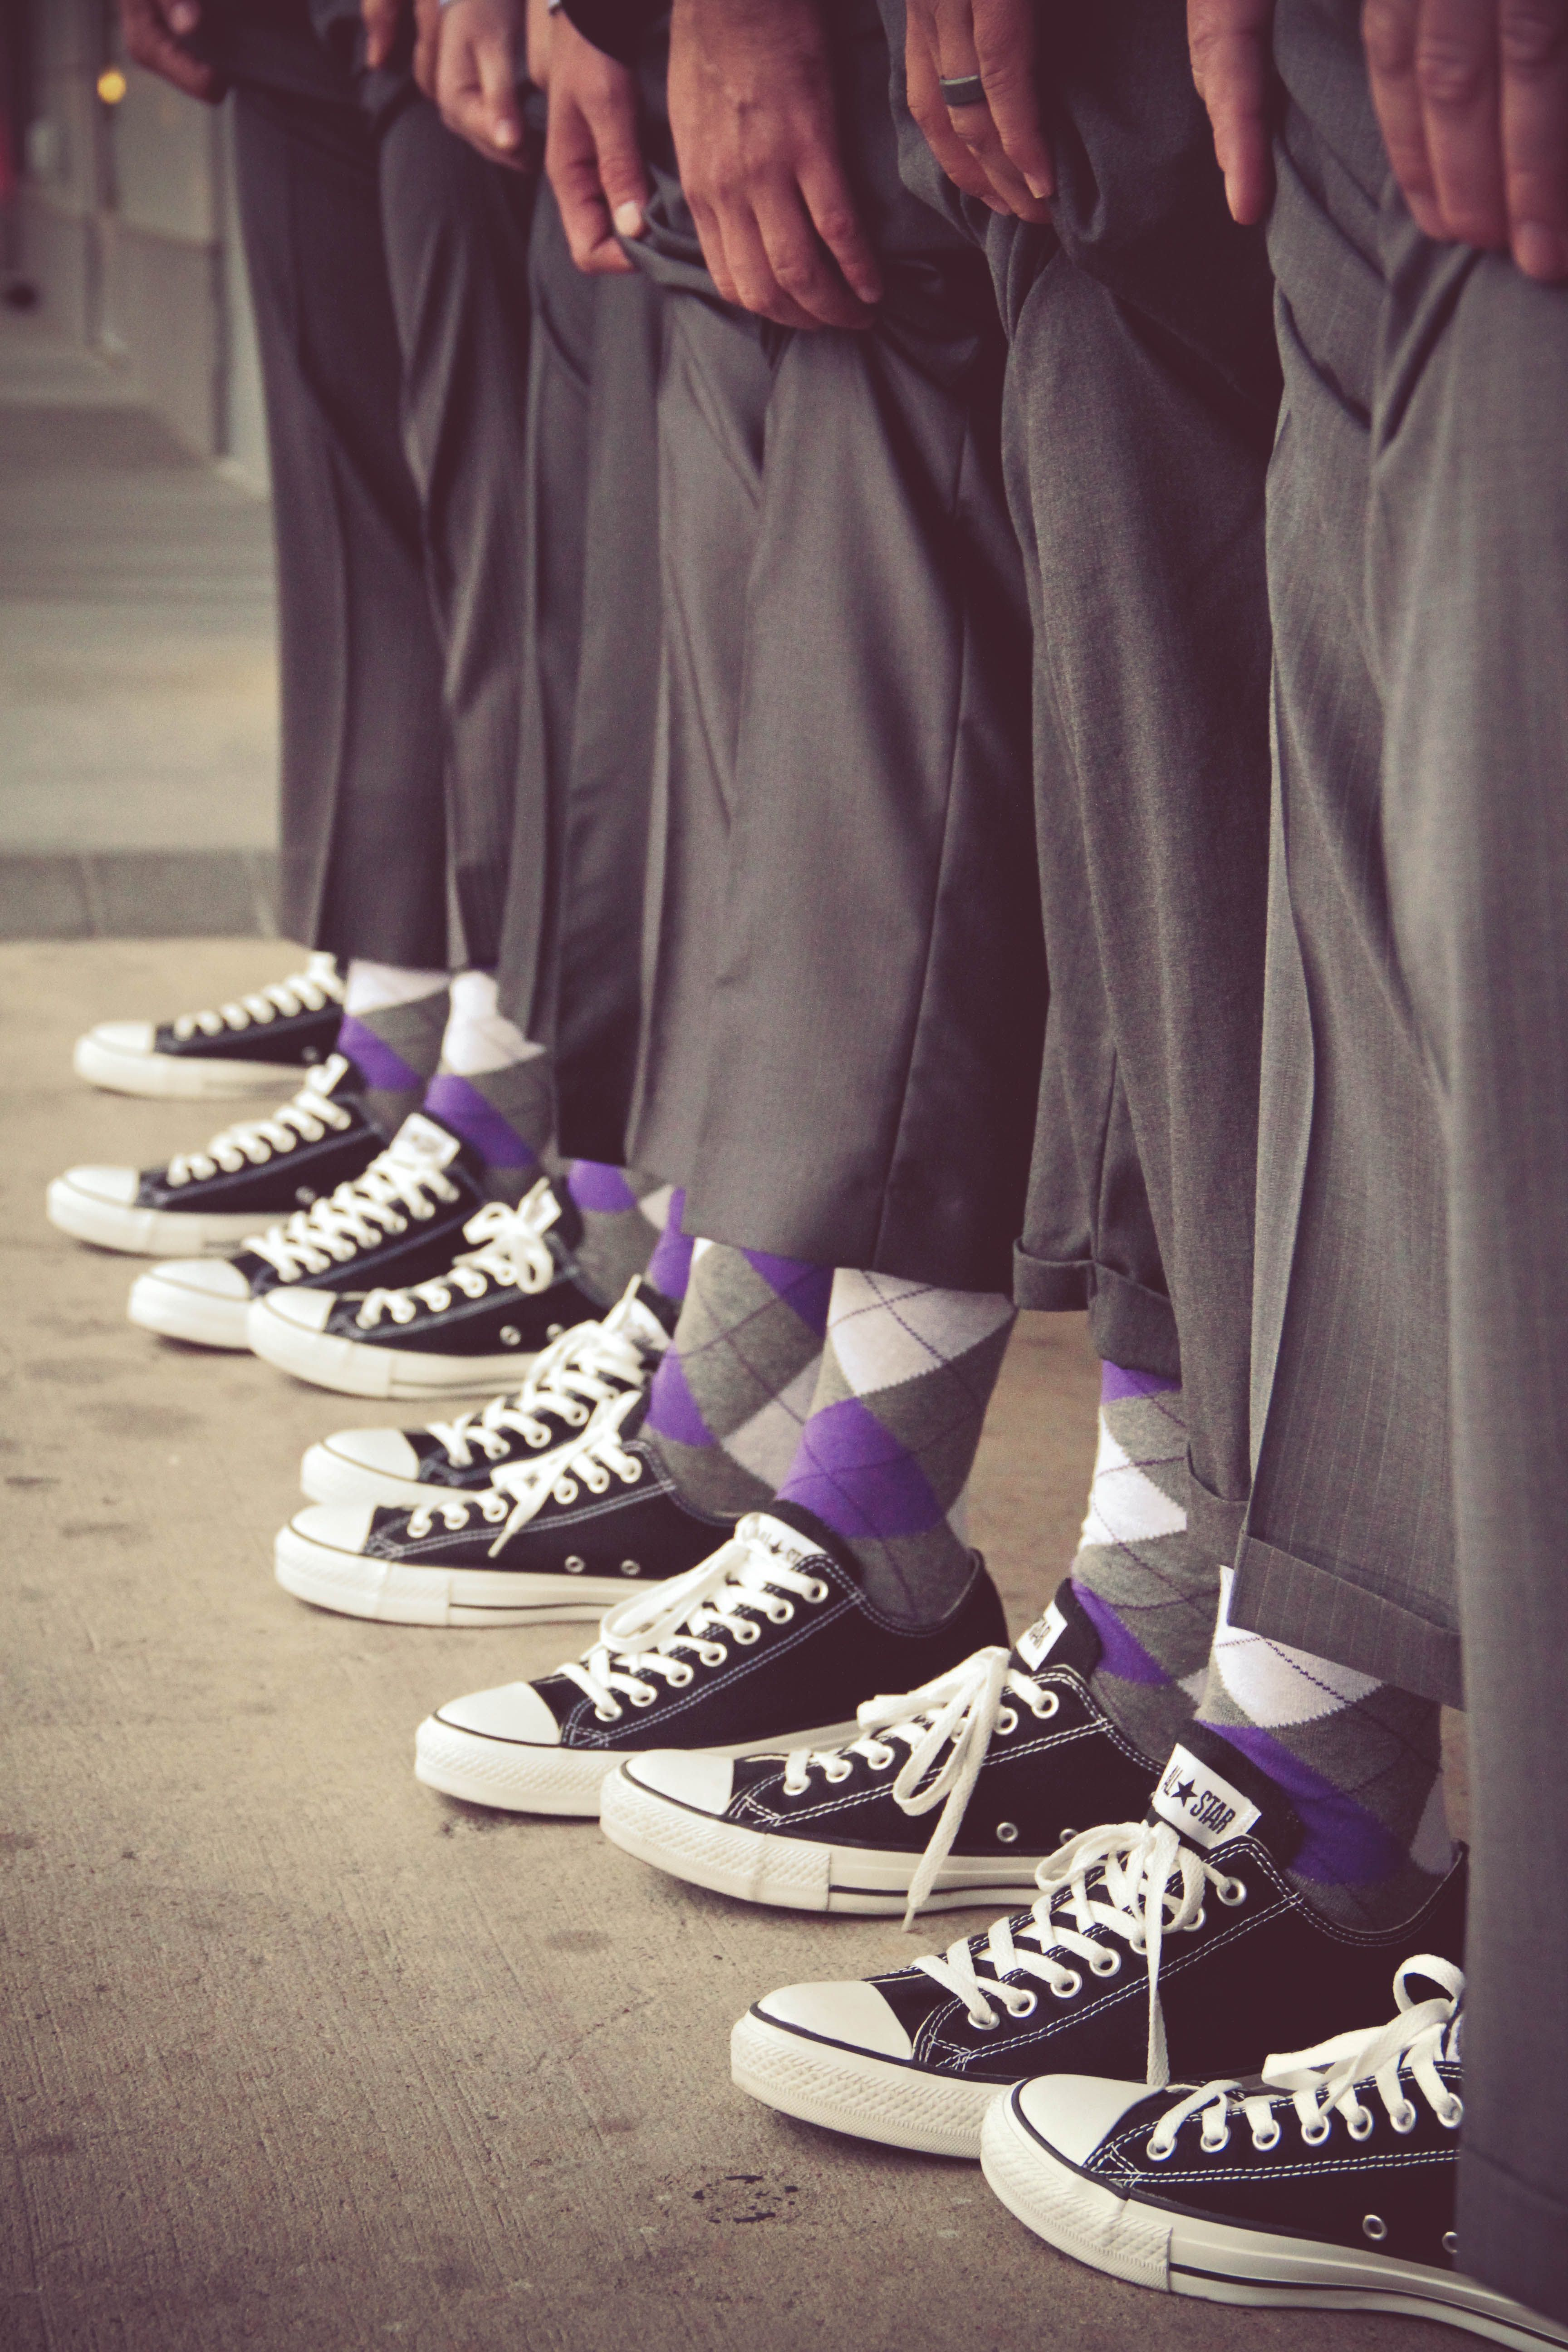 Crazy Groomsmen Yes These Are My Son In Laws Groomsmen It Fit Him Perfectly Wedding Converse Wedding Photography Styles Groomsmen Shoes